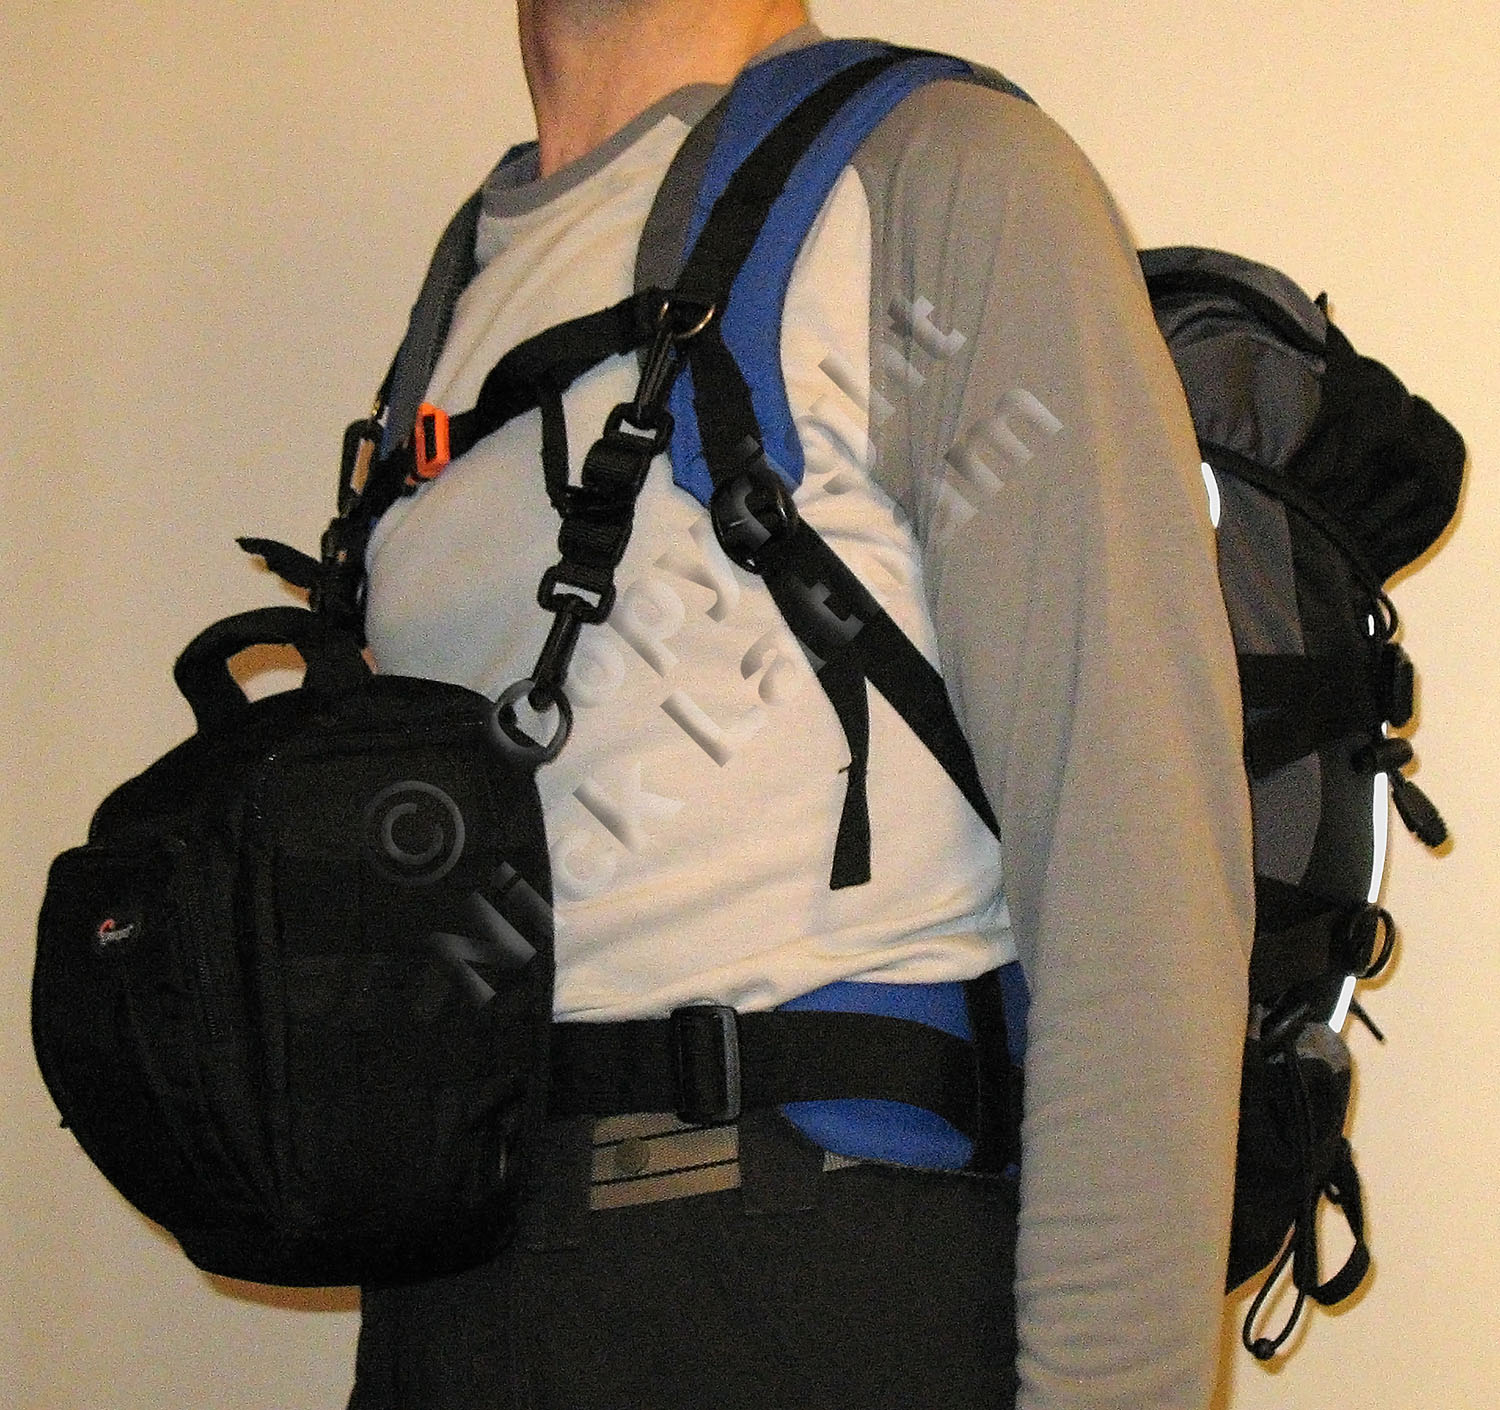 Fellwalking camera bag - front mounted pouch